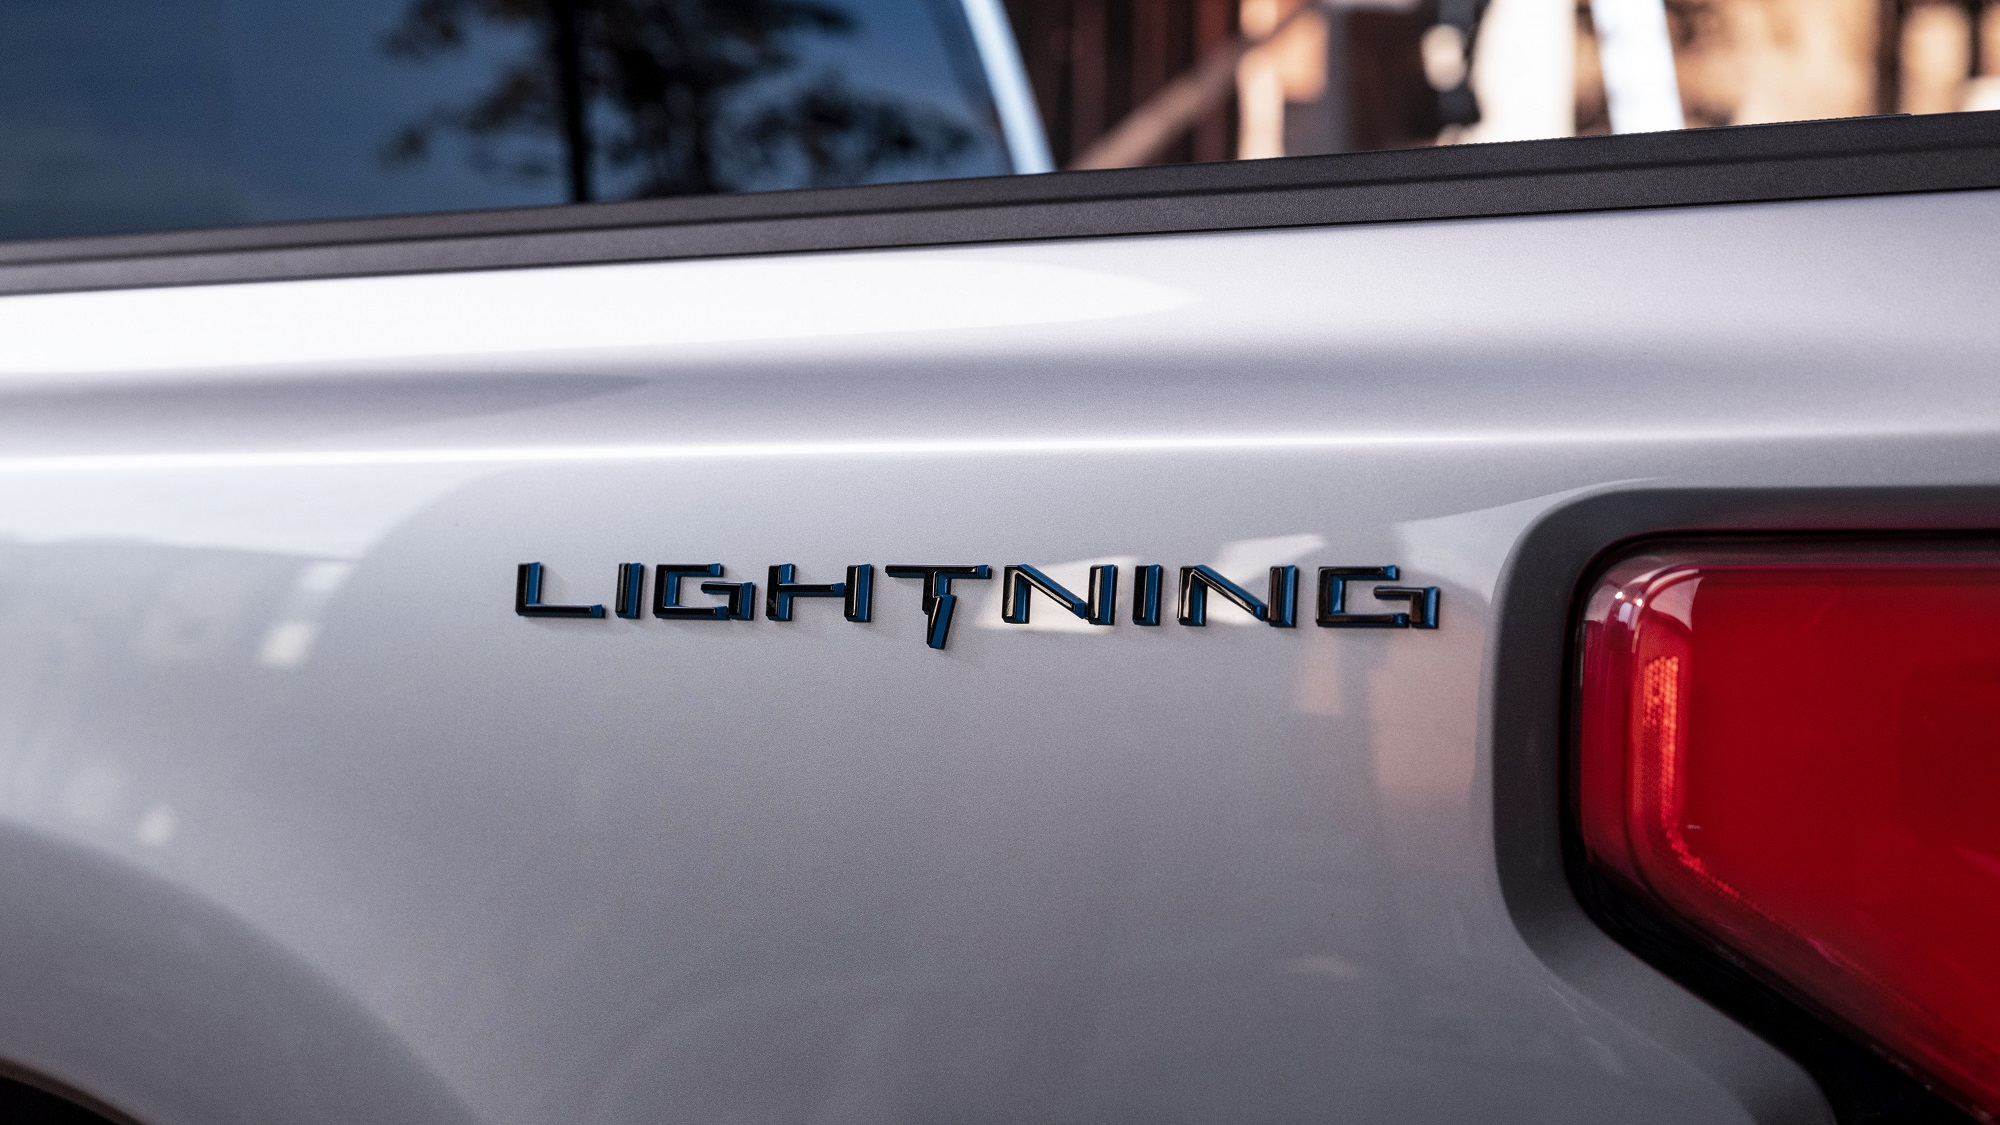 Ford's smartest, most innovative truck yet will be all-electric and called F-150 Lightning. The all-new F-150 Lightning will be revealed May 19 at Ford World Headquarters in Dearborn and livestreamed for millions to watch.